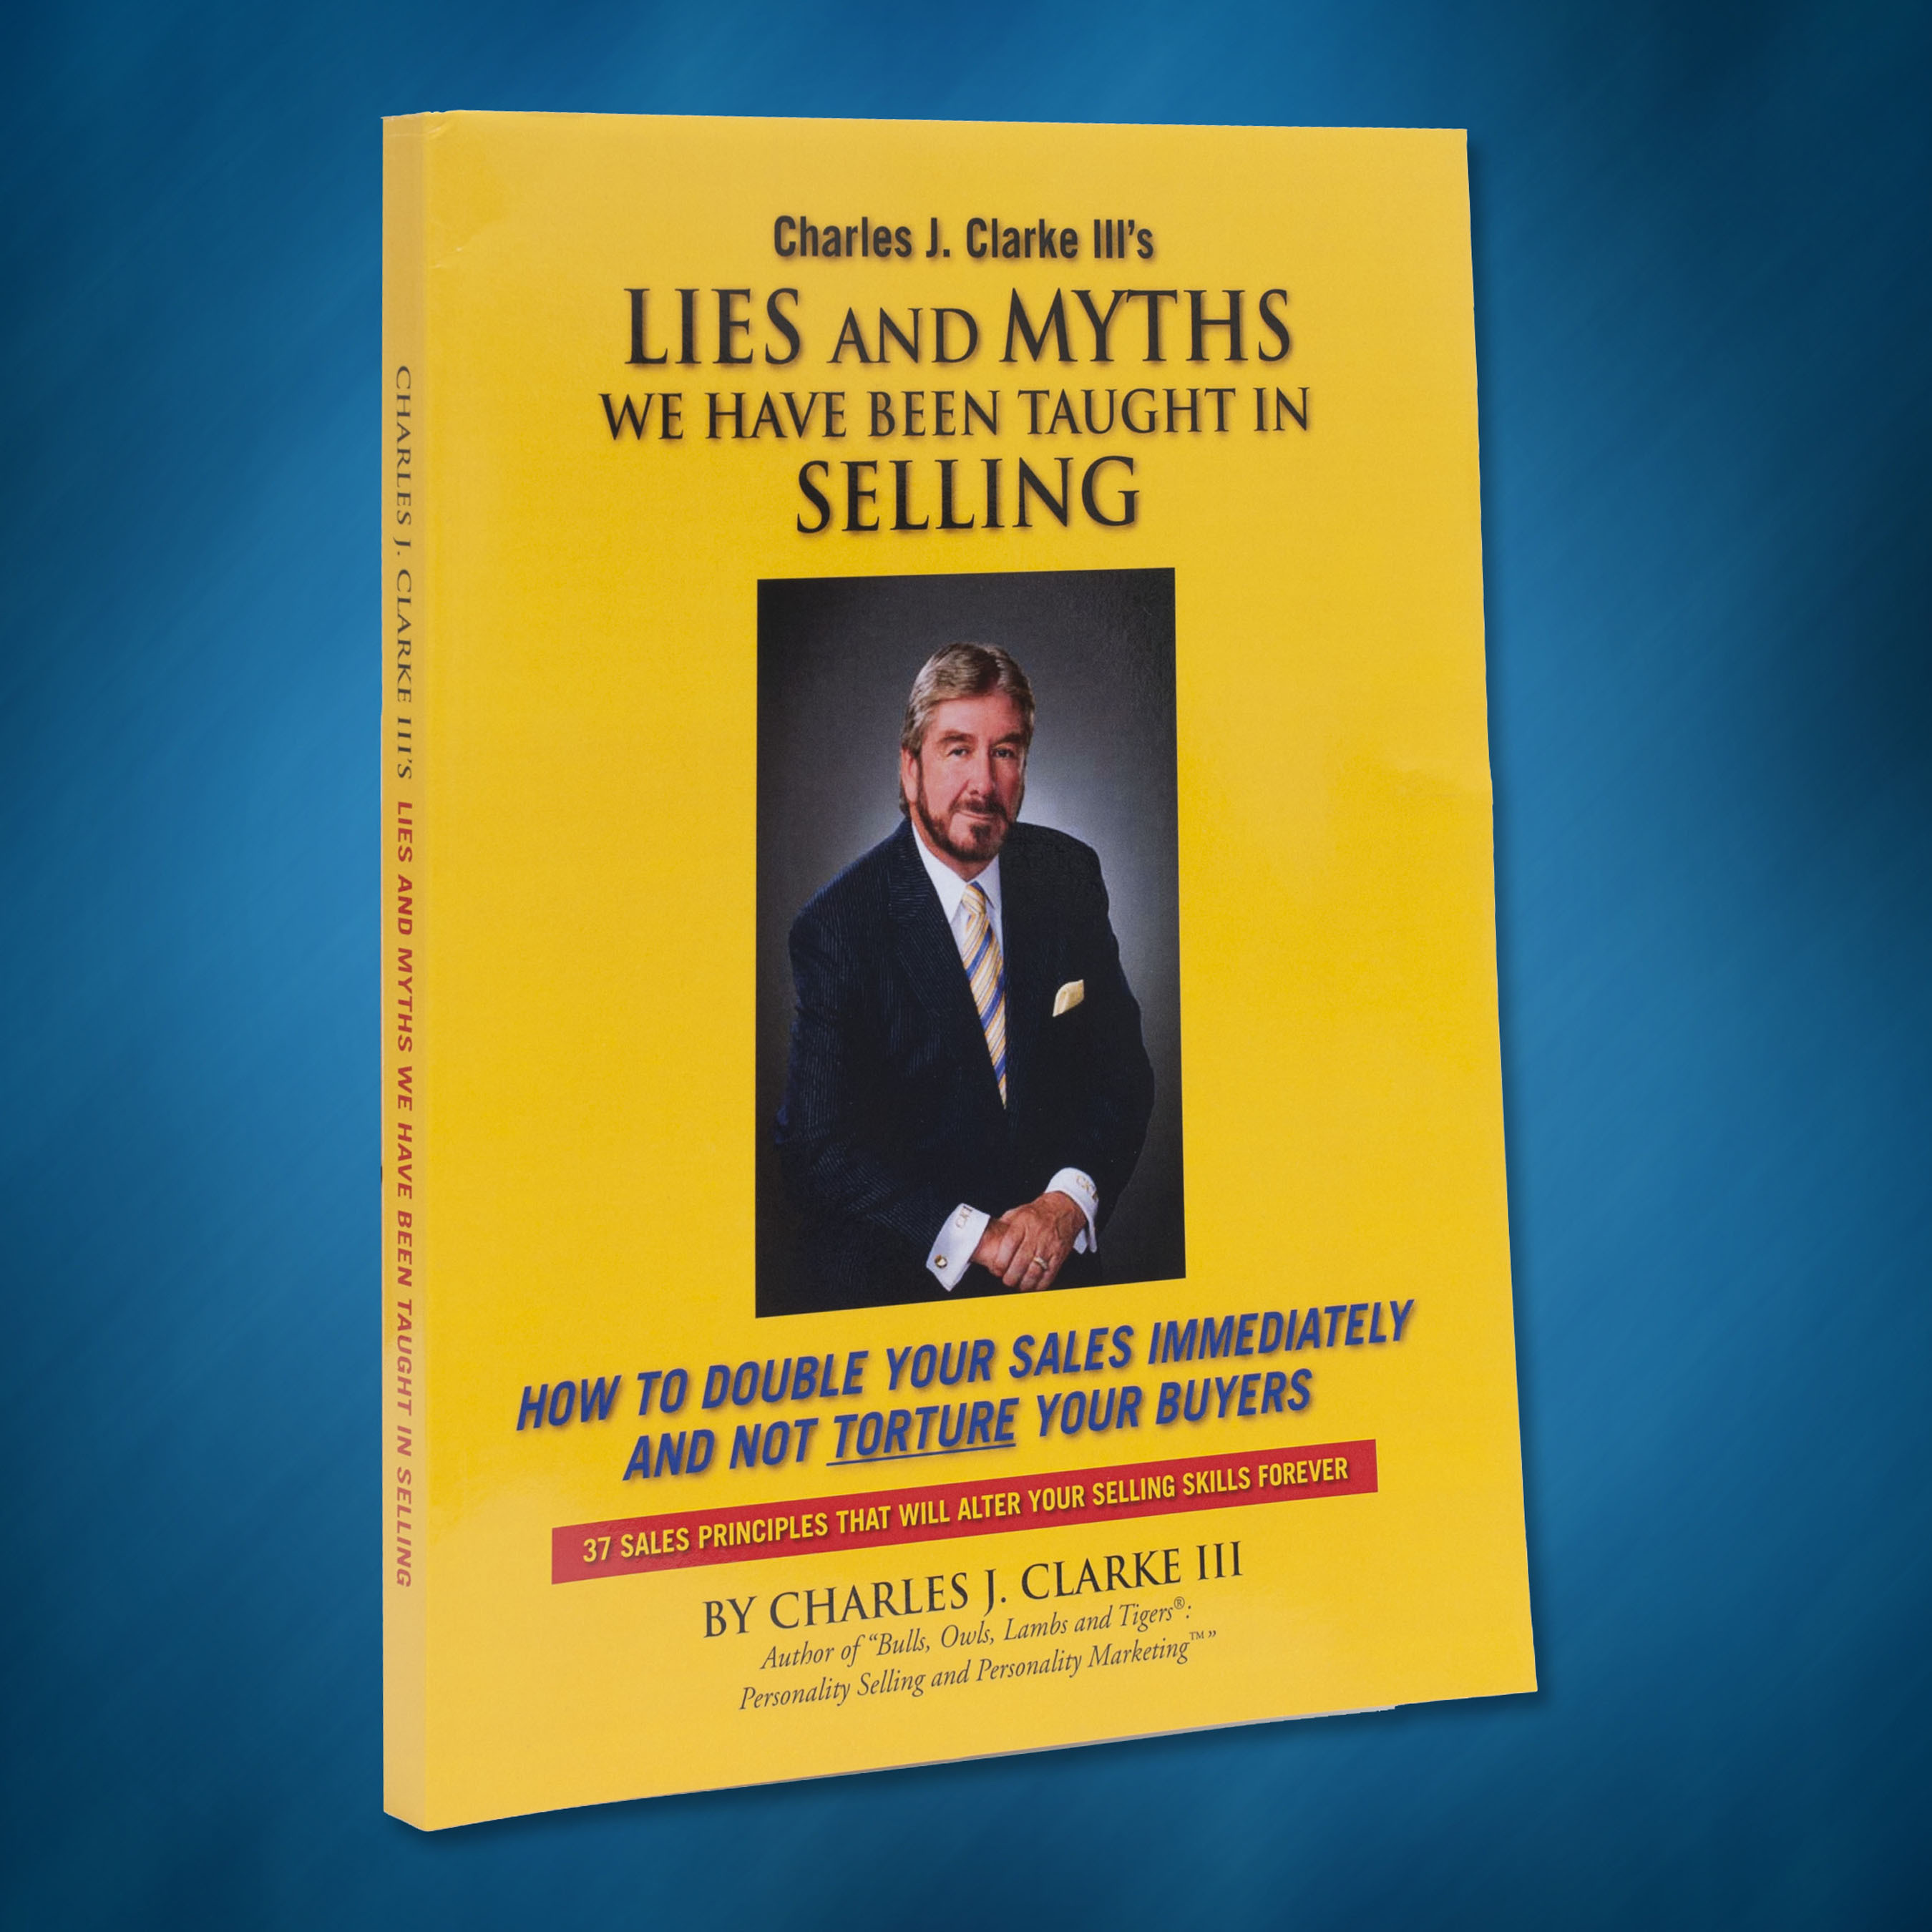 Charles J. Clarke III Releases 'Lies and Myths We Have Been Taught in Selling'